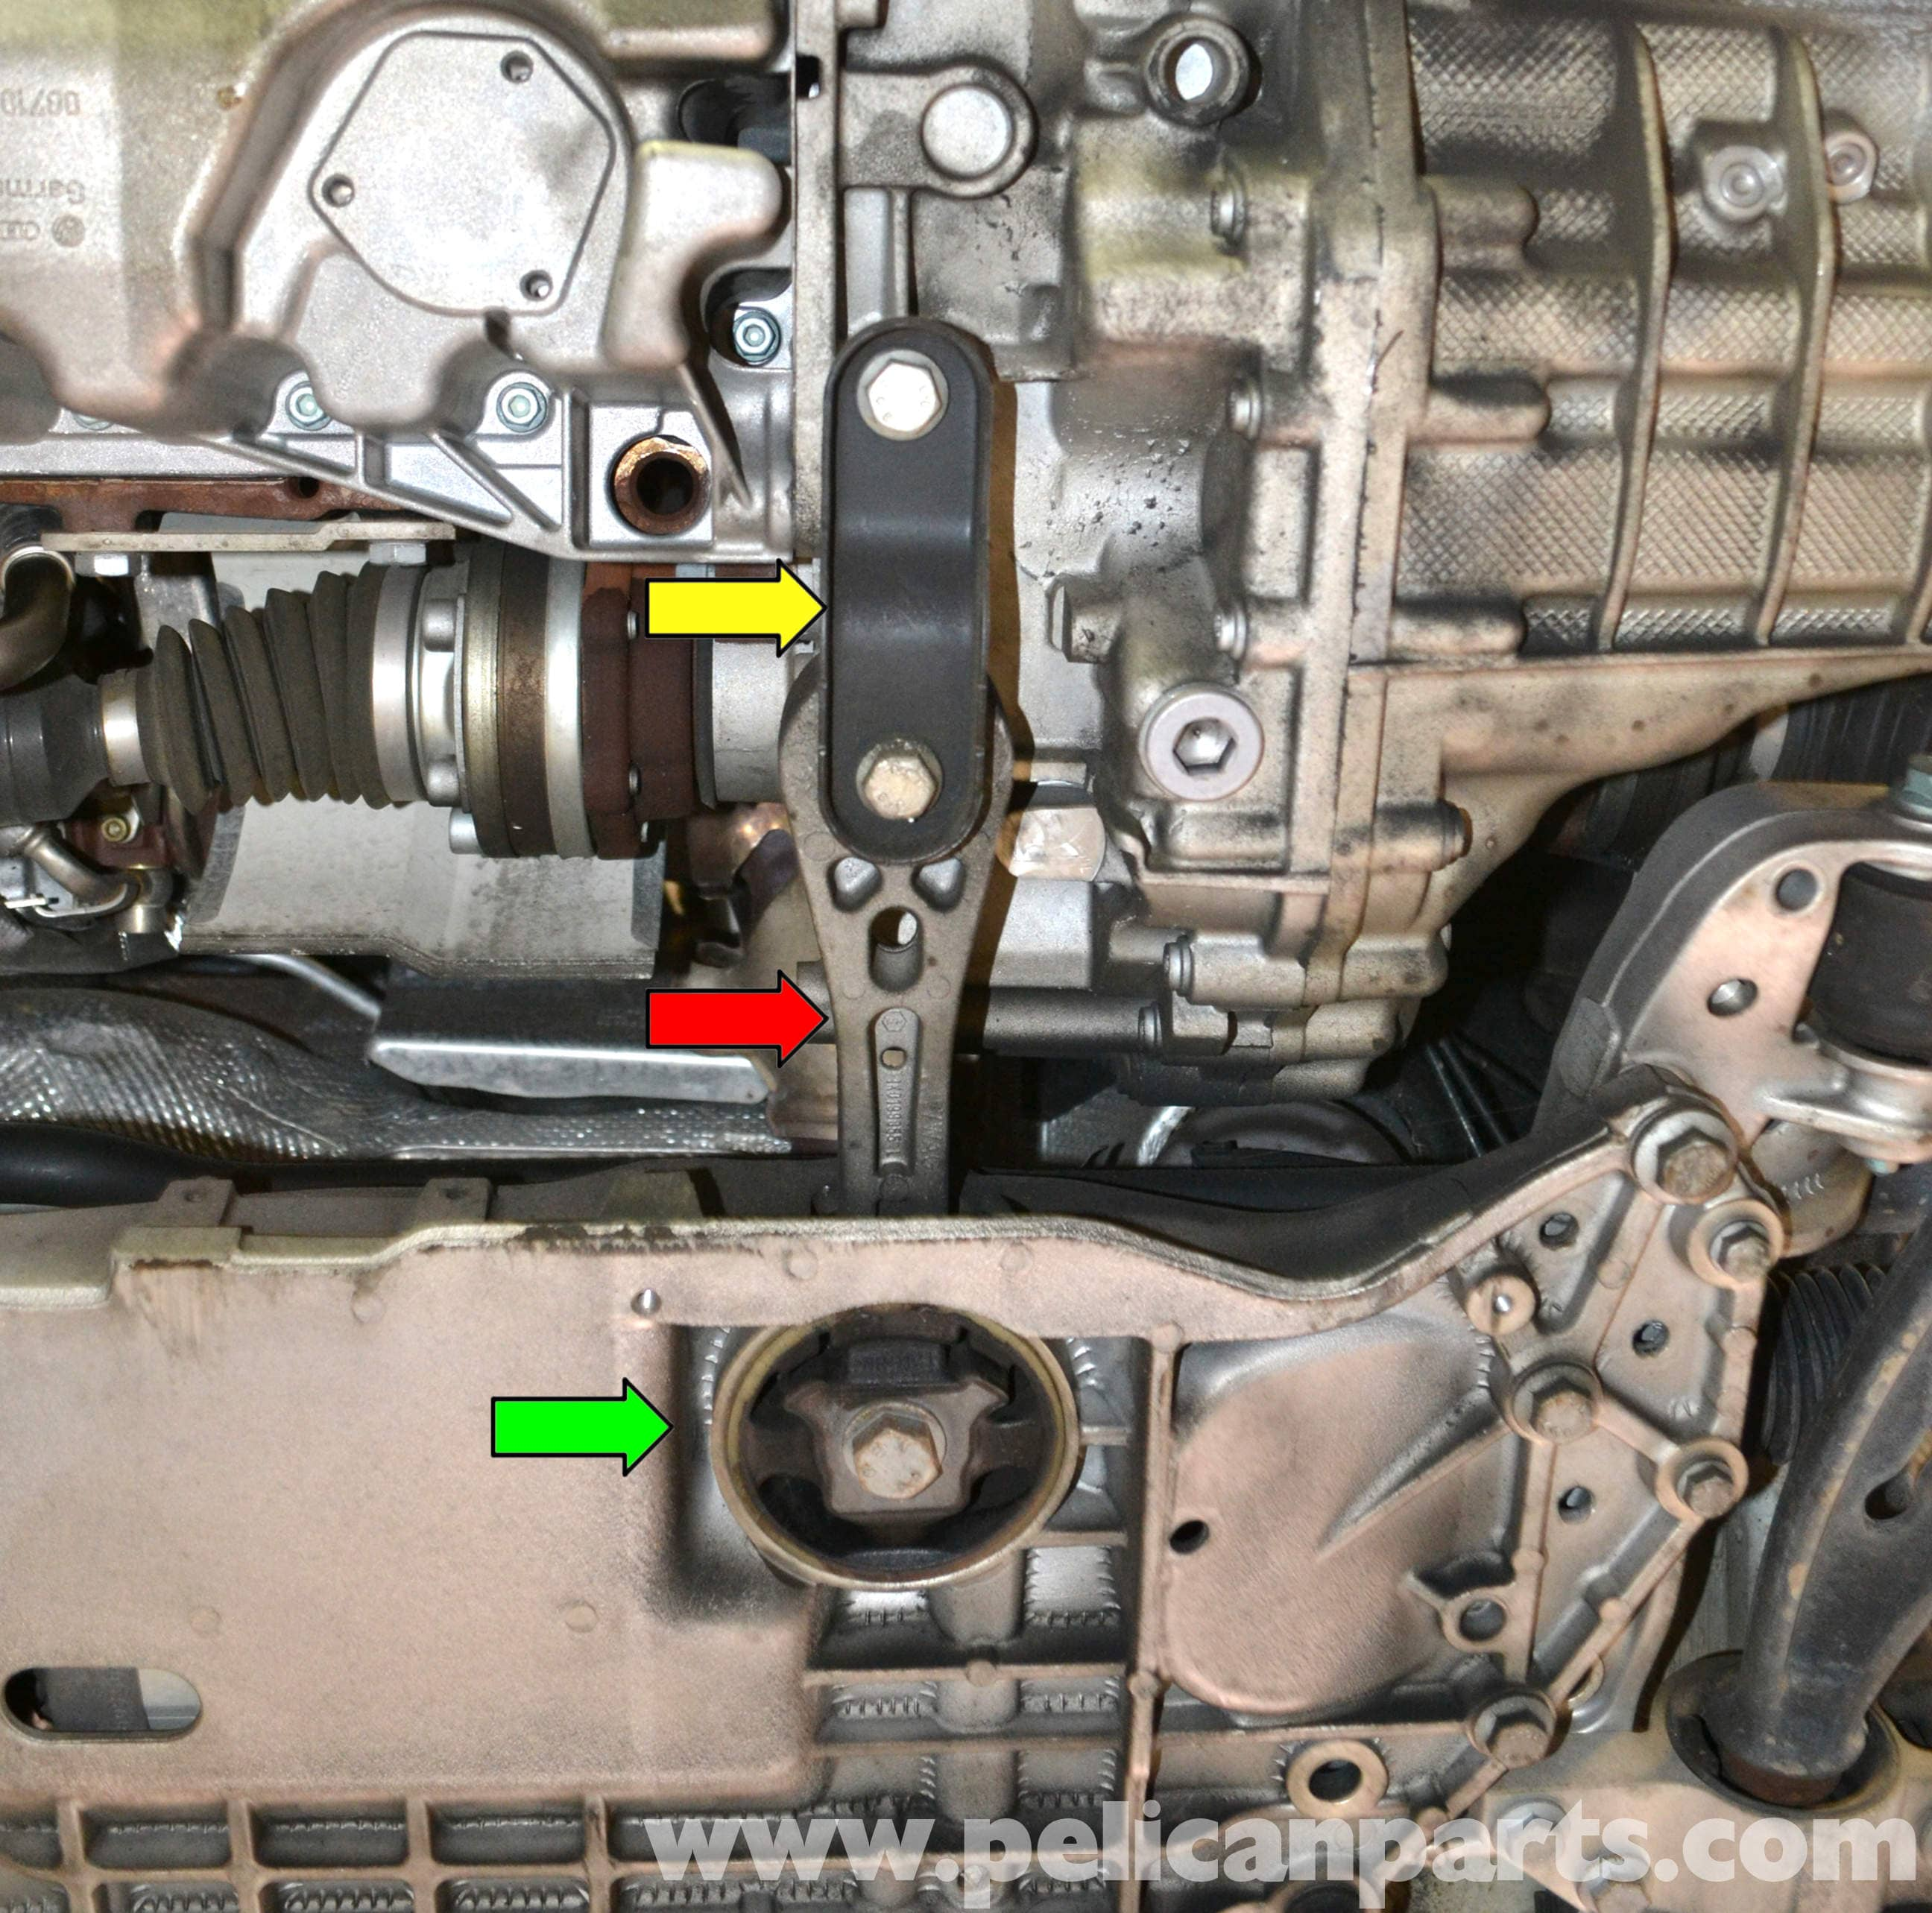 Please Help Looking For A Transmission Removal Diy: Volkswagen Golf GTI Mk V Front Sway Bar Bushings